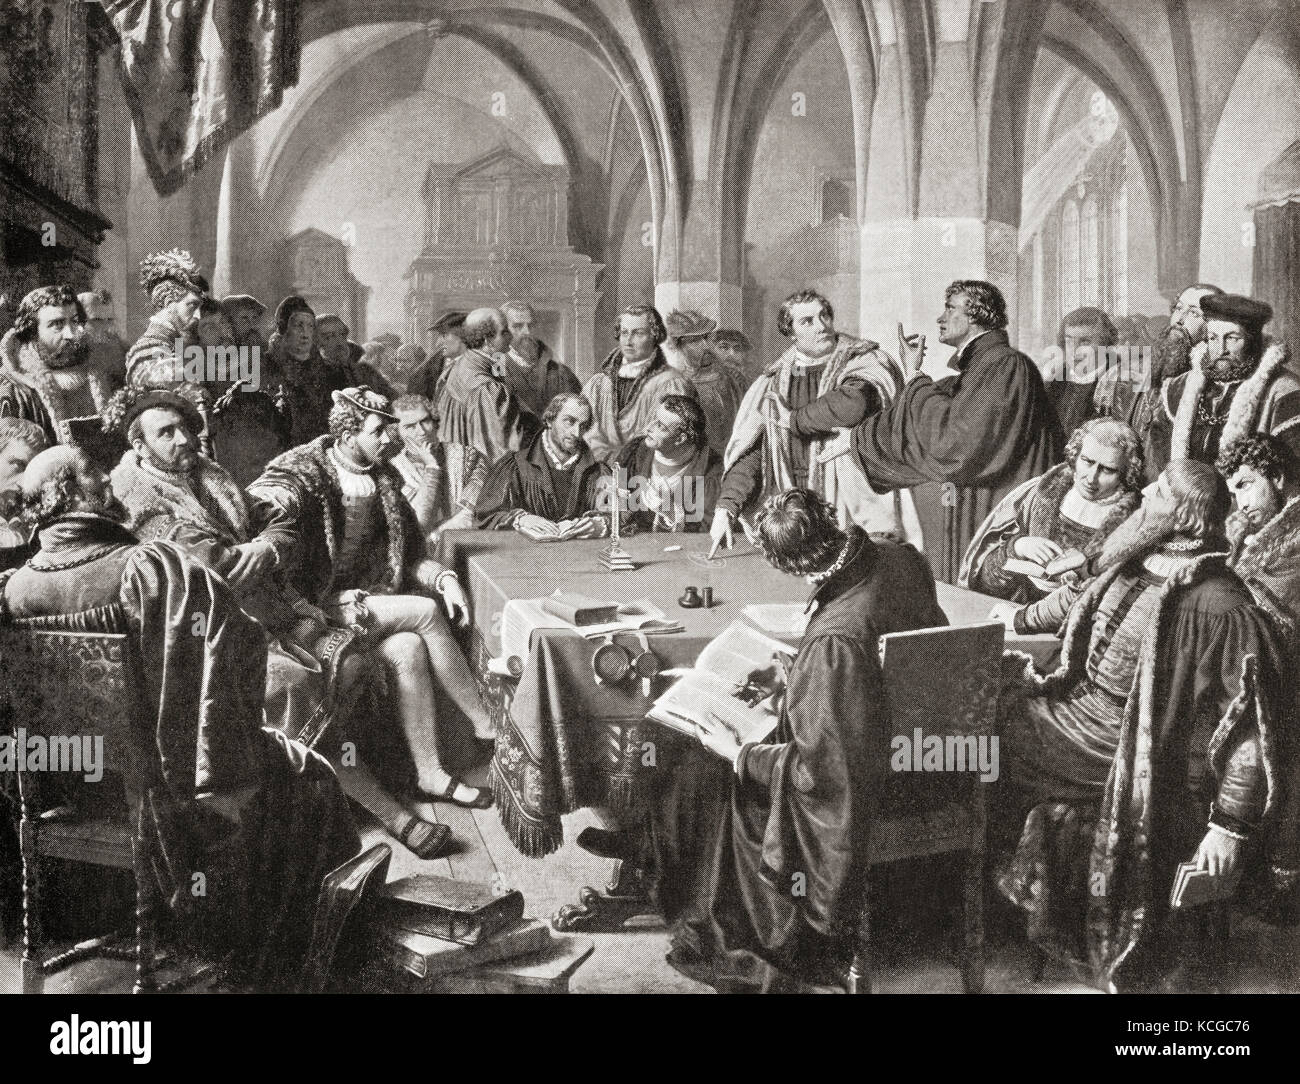 The Marburg Colloquy, Marburg Castle, Marburg, Hesse, Germany 1529. A  meeting